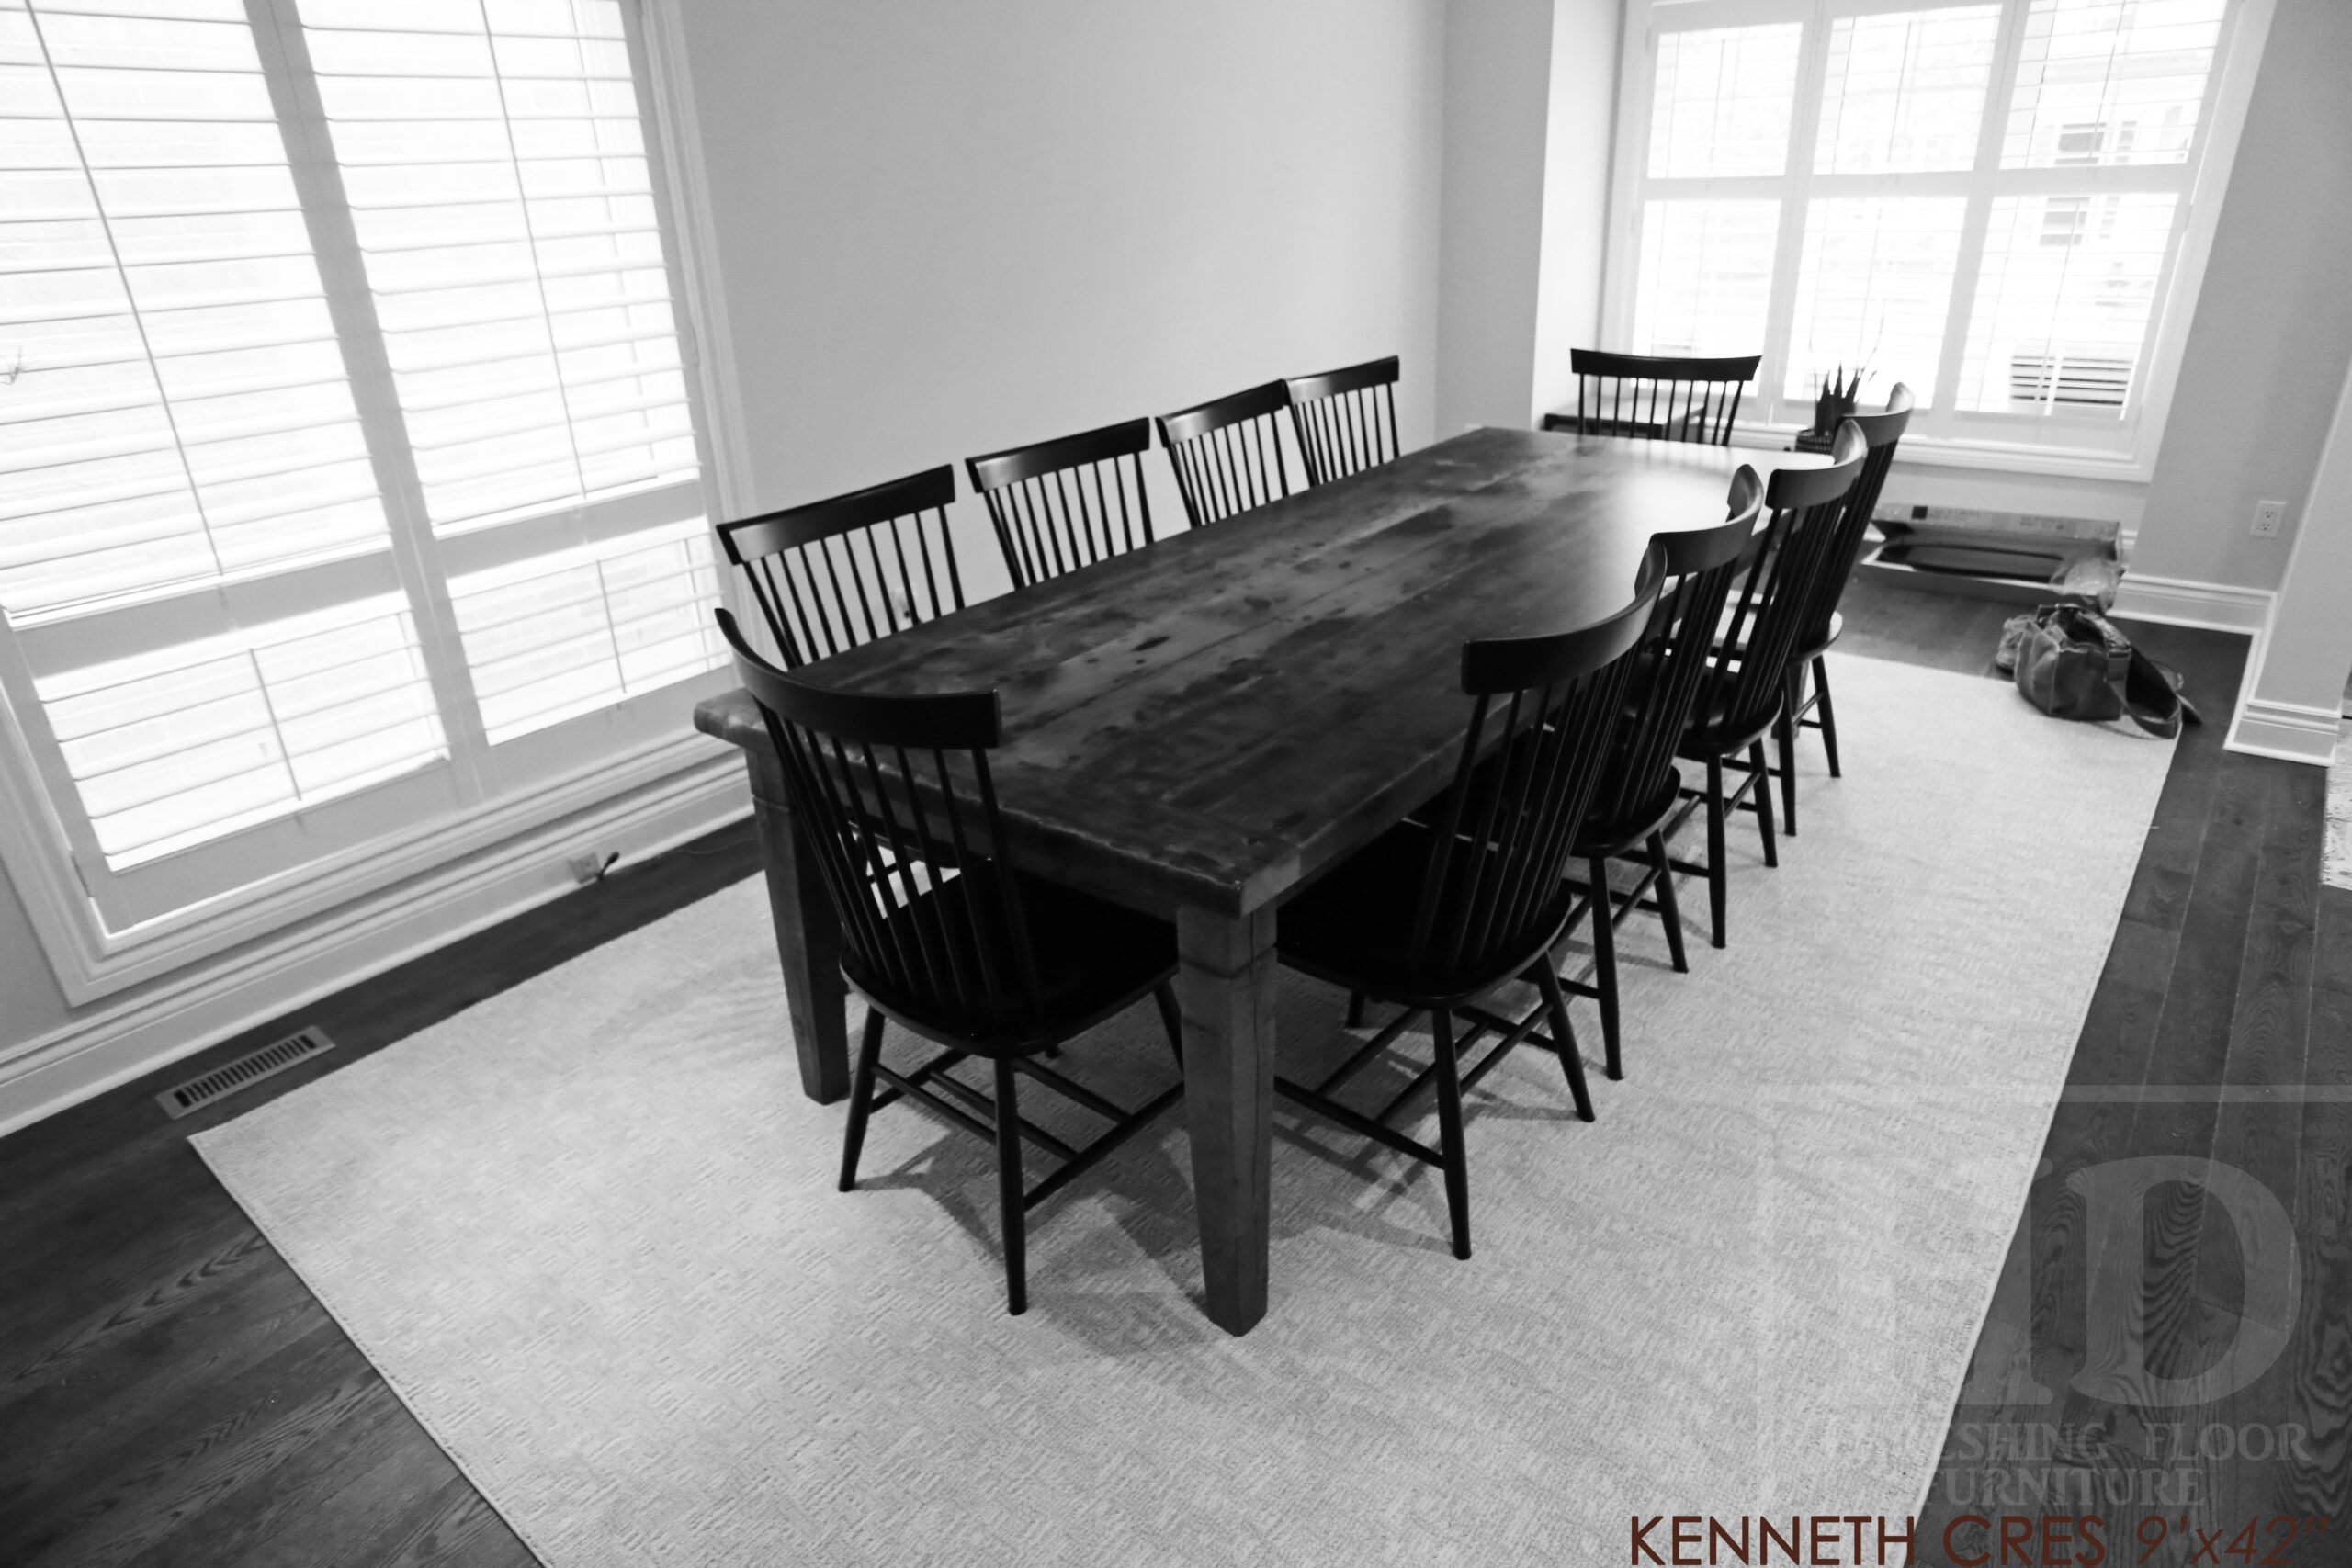 """9' Ontario Barnwood Harvest Base Table we made for a Burlington, Ontario home - 42"""" wide - Tapered with a Notch Windbrace Beam Legs - 2"""" Hemlock Threshing Floor Top -  Original edges & distressing maintained - Premium epoxy + matte polyurethane finish - 10 Shaker Chairs / Solid Wormy Maple / Painted Solid Black / Polyurethane clearcoat finish - www.table.ca"""